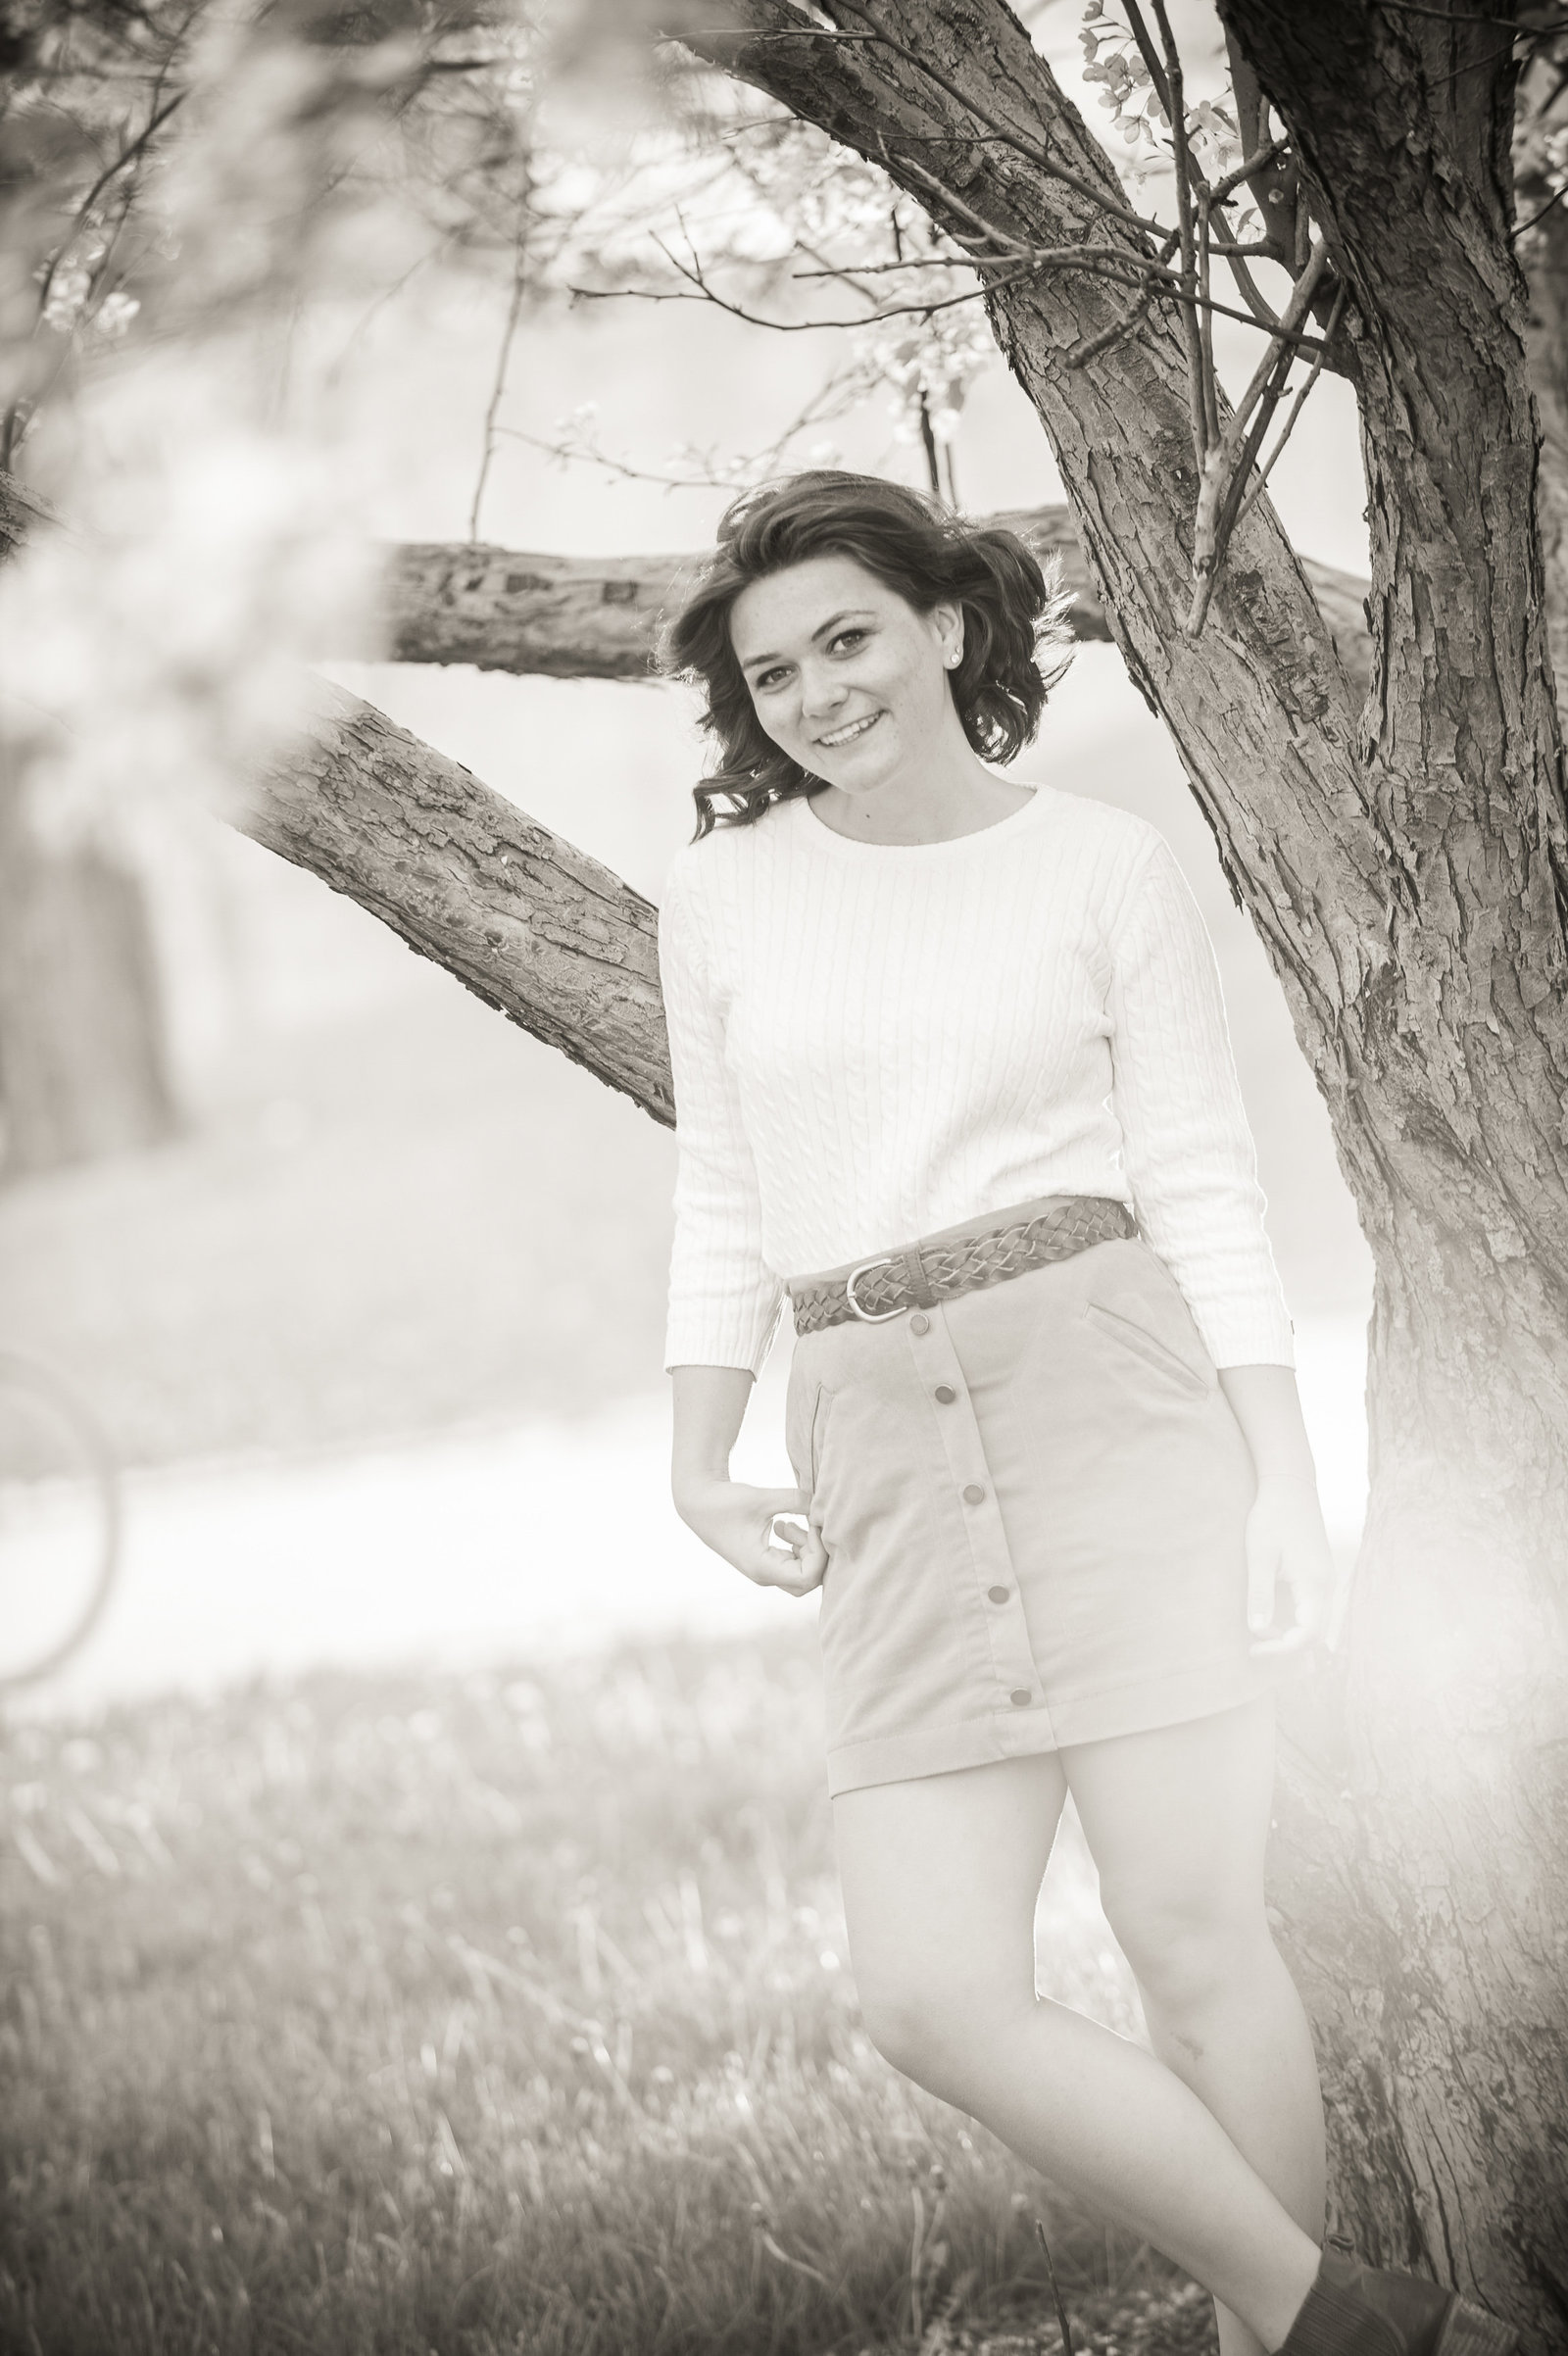 16.05.14.AngelaGarbotPhotography.Chicago.SeniorPhotos.Semler.006.Showit